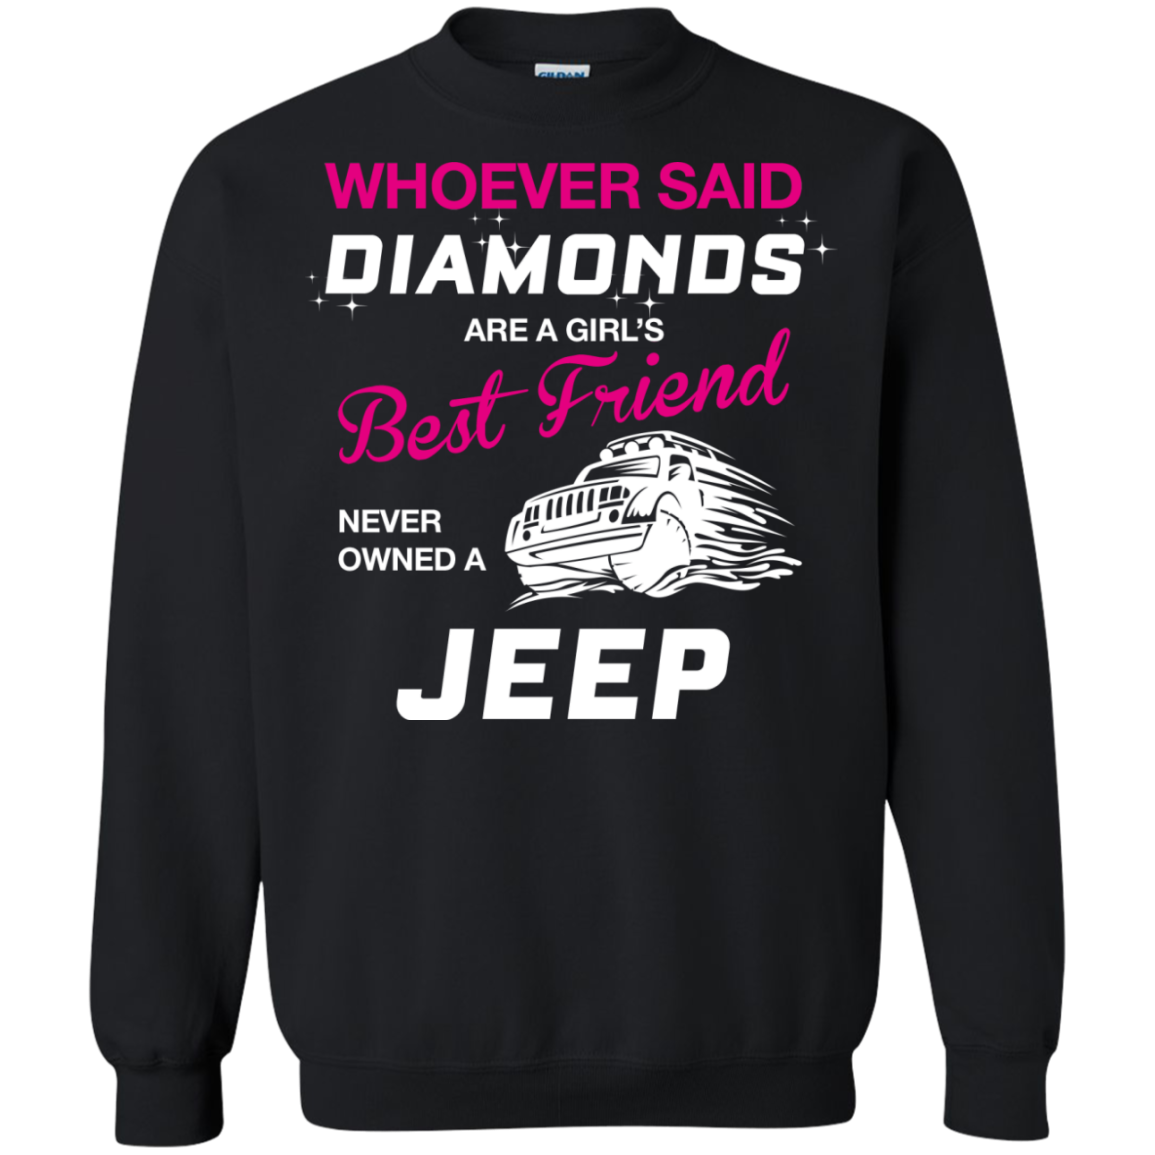 Whoever said DIAMONDS are a girl's Best Friend never owned a JEEP - TheSunCat.com - 5